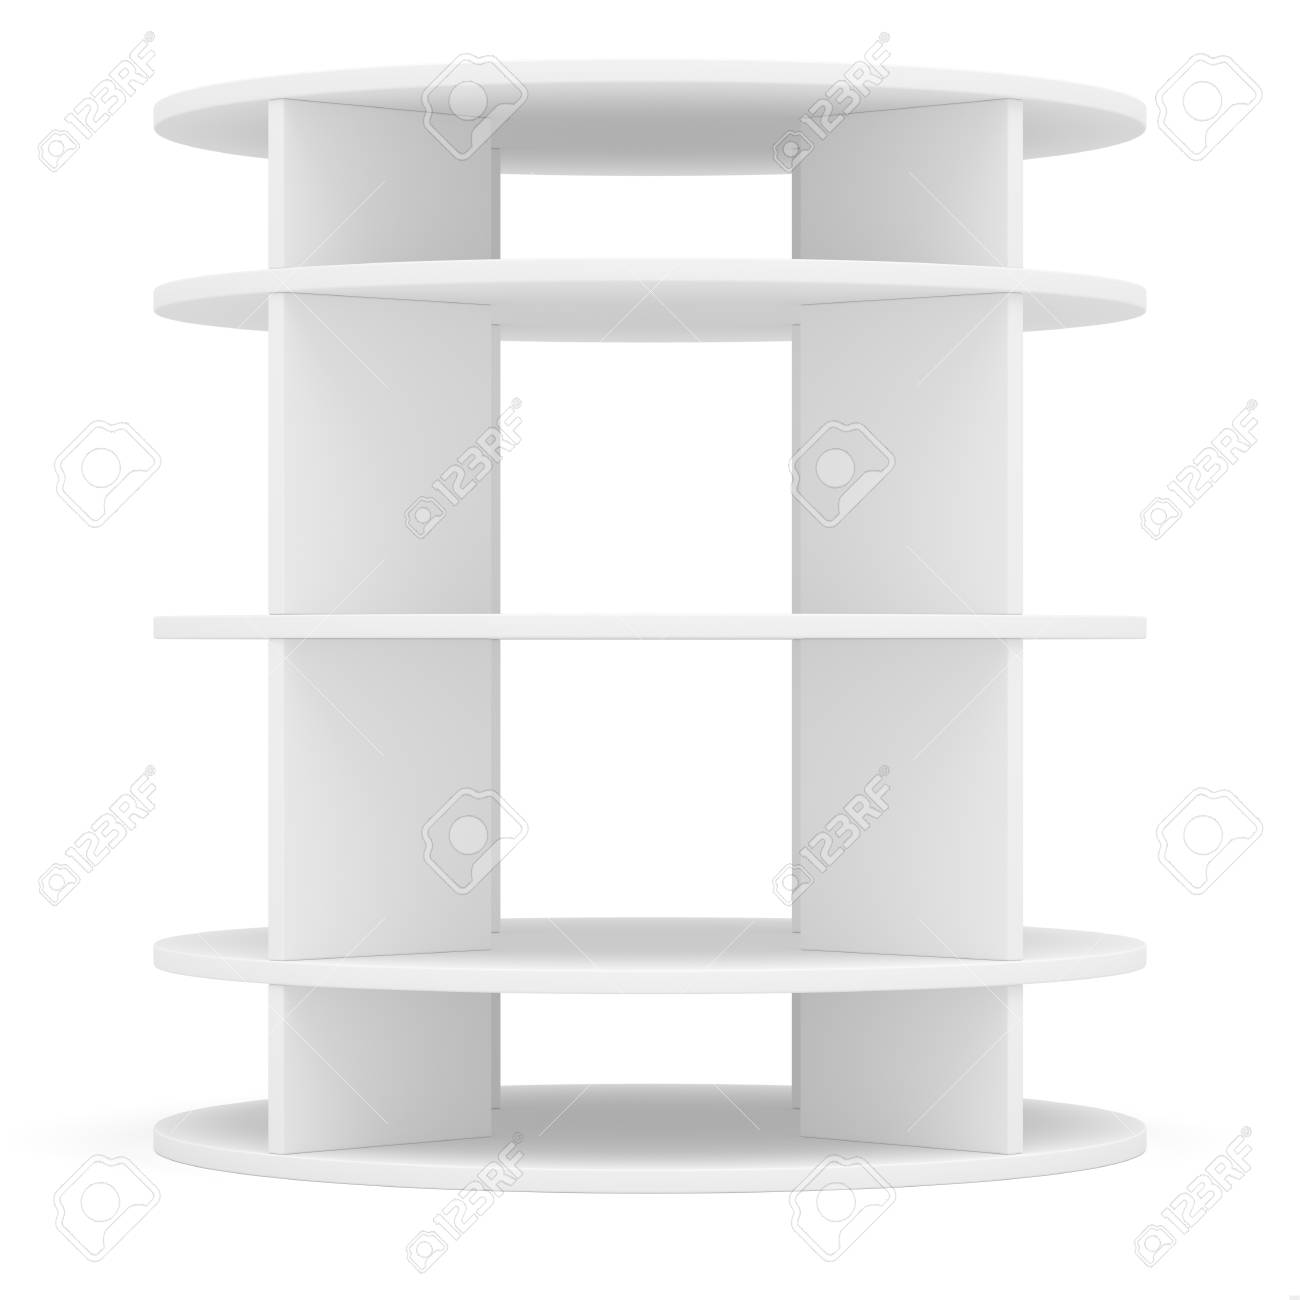 Empty Round Shelf For Exhibition. Templated For Design. 3D ...